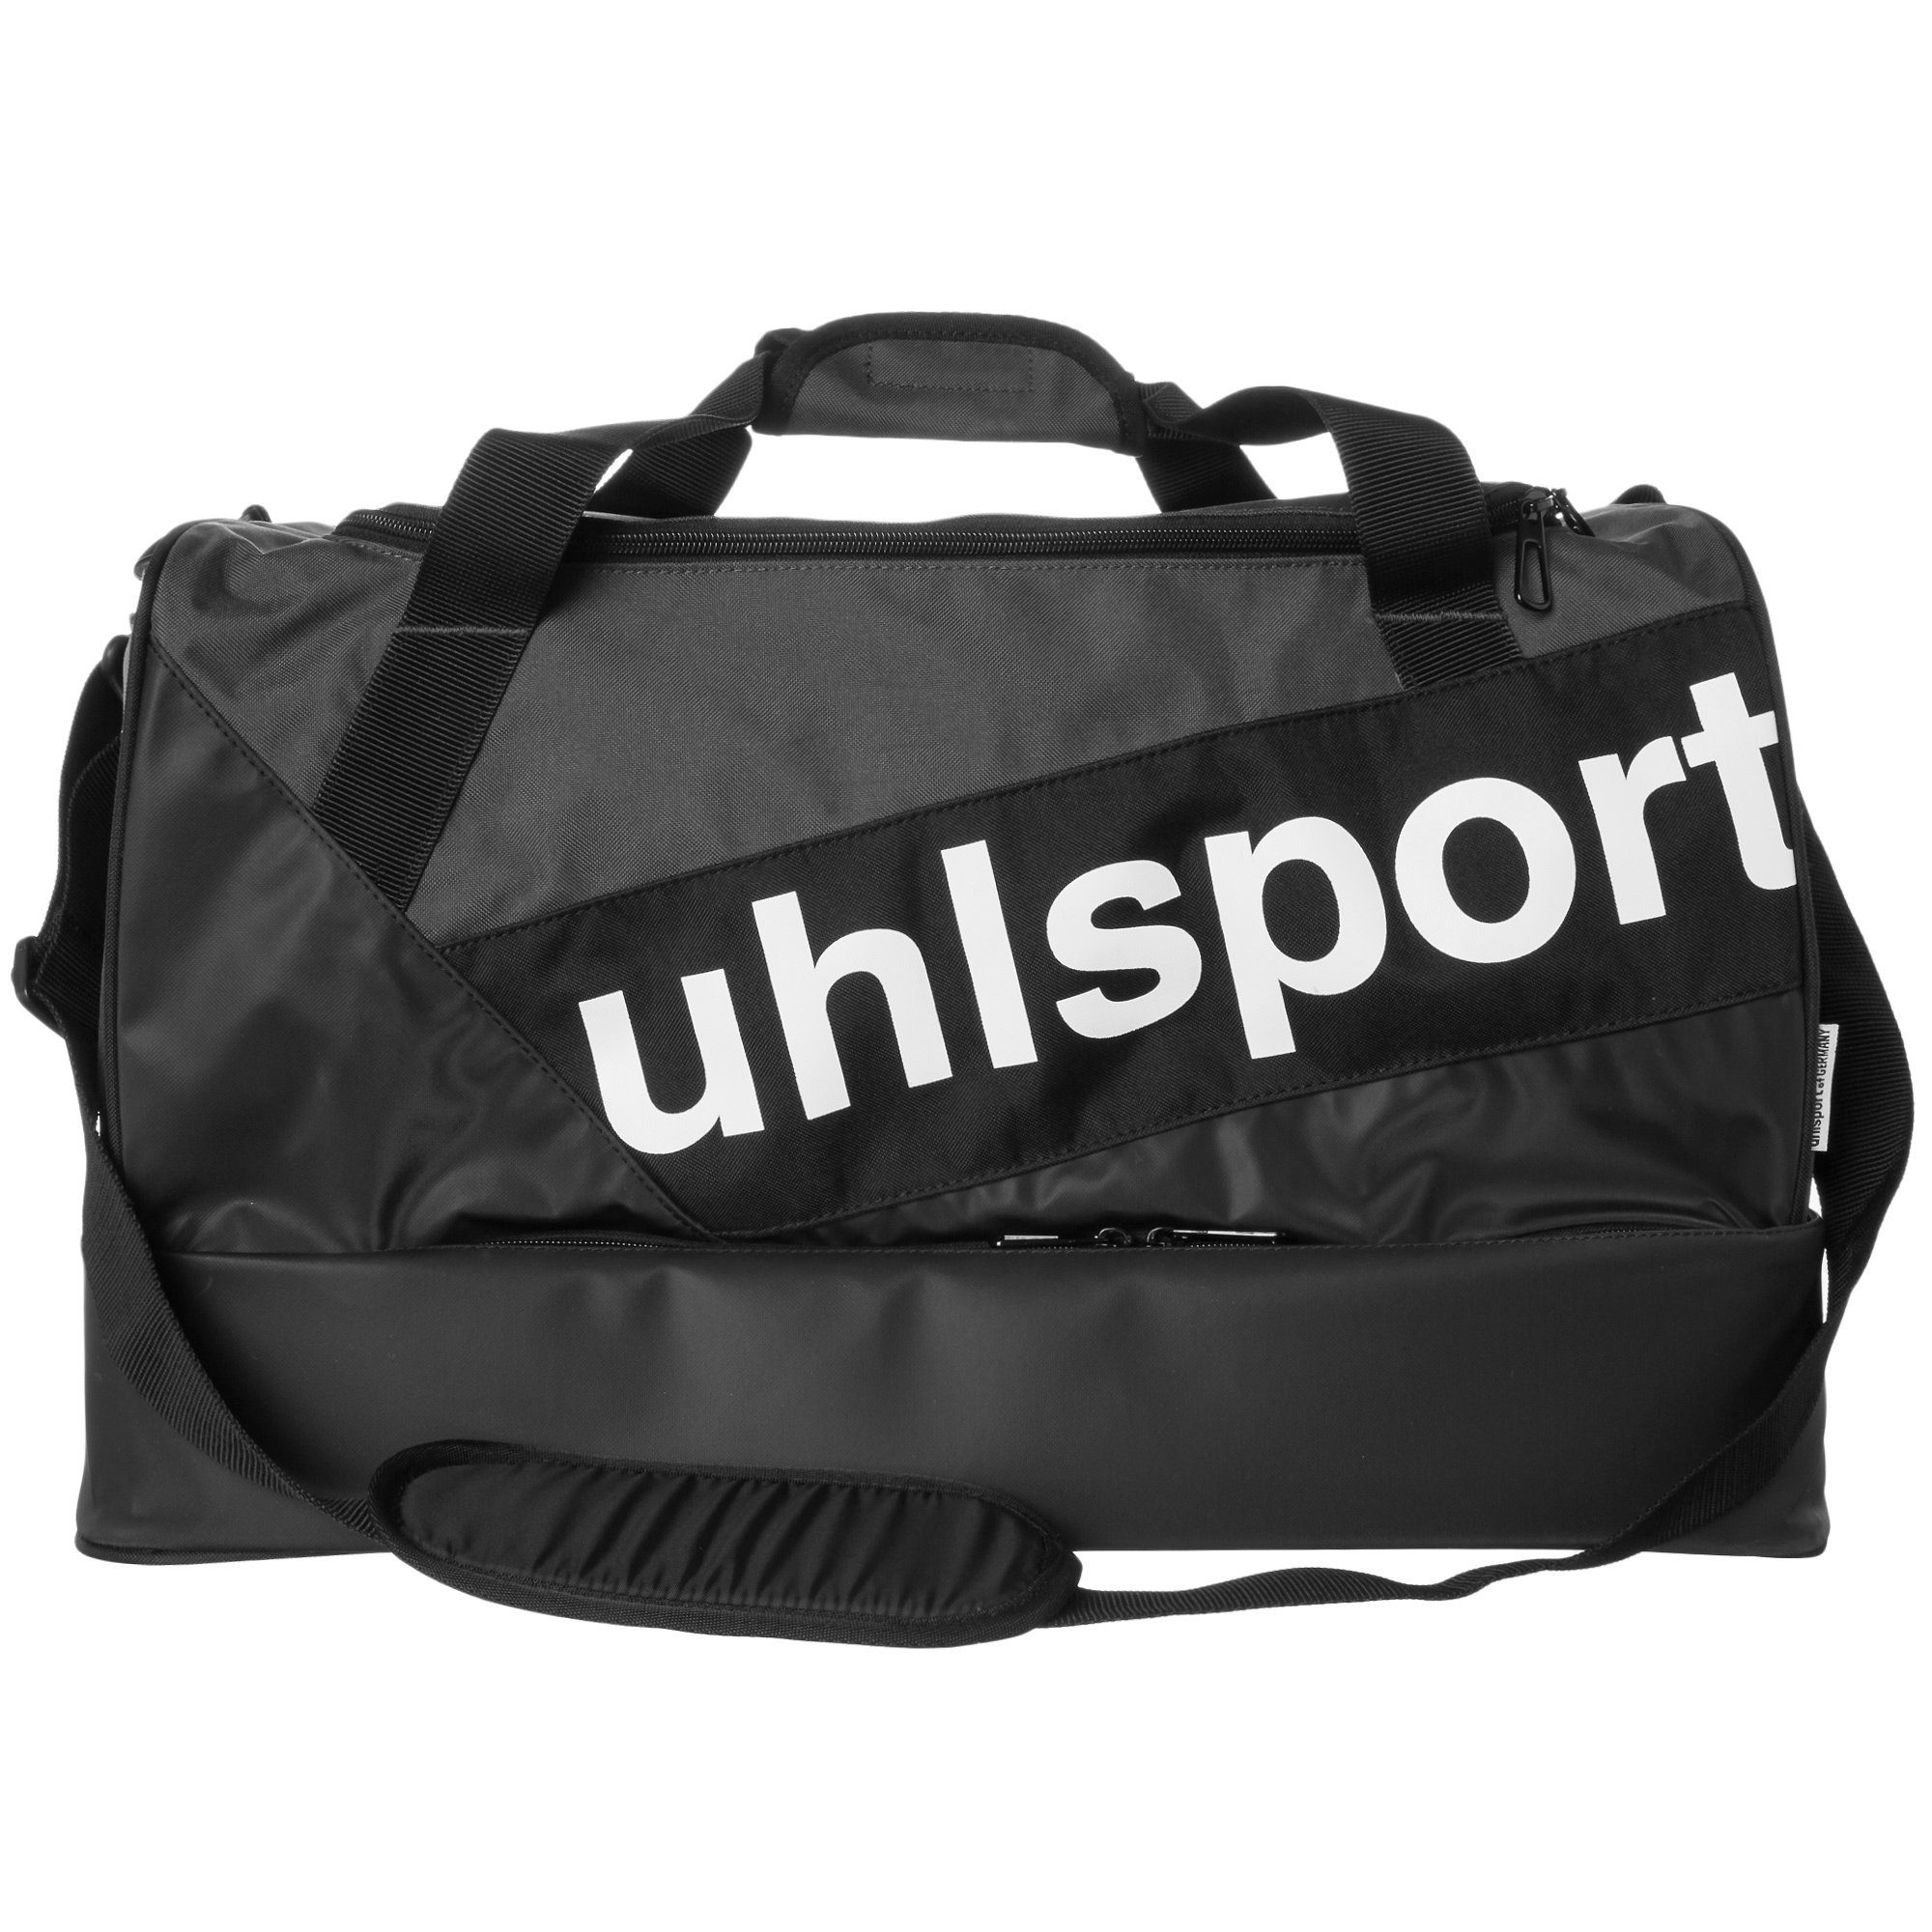 UHLSPORT Progressive Line 50 L Playersbag